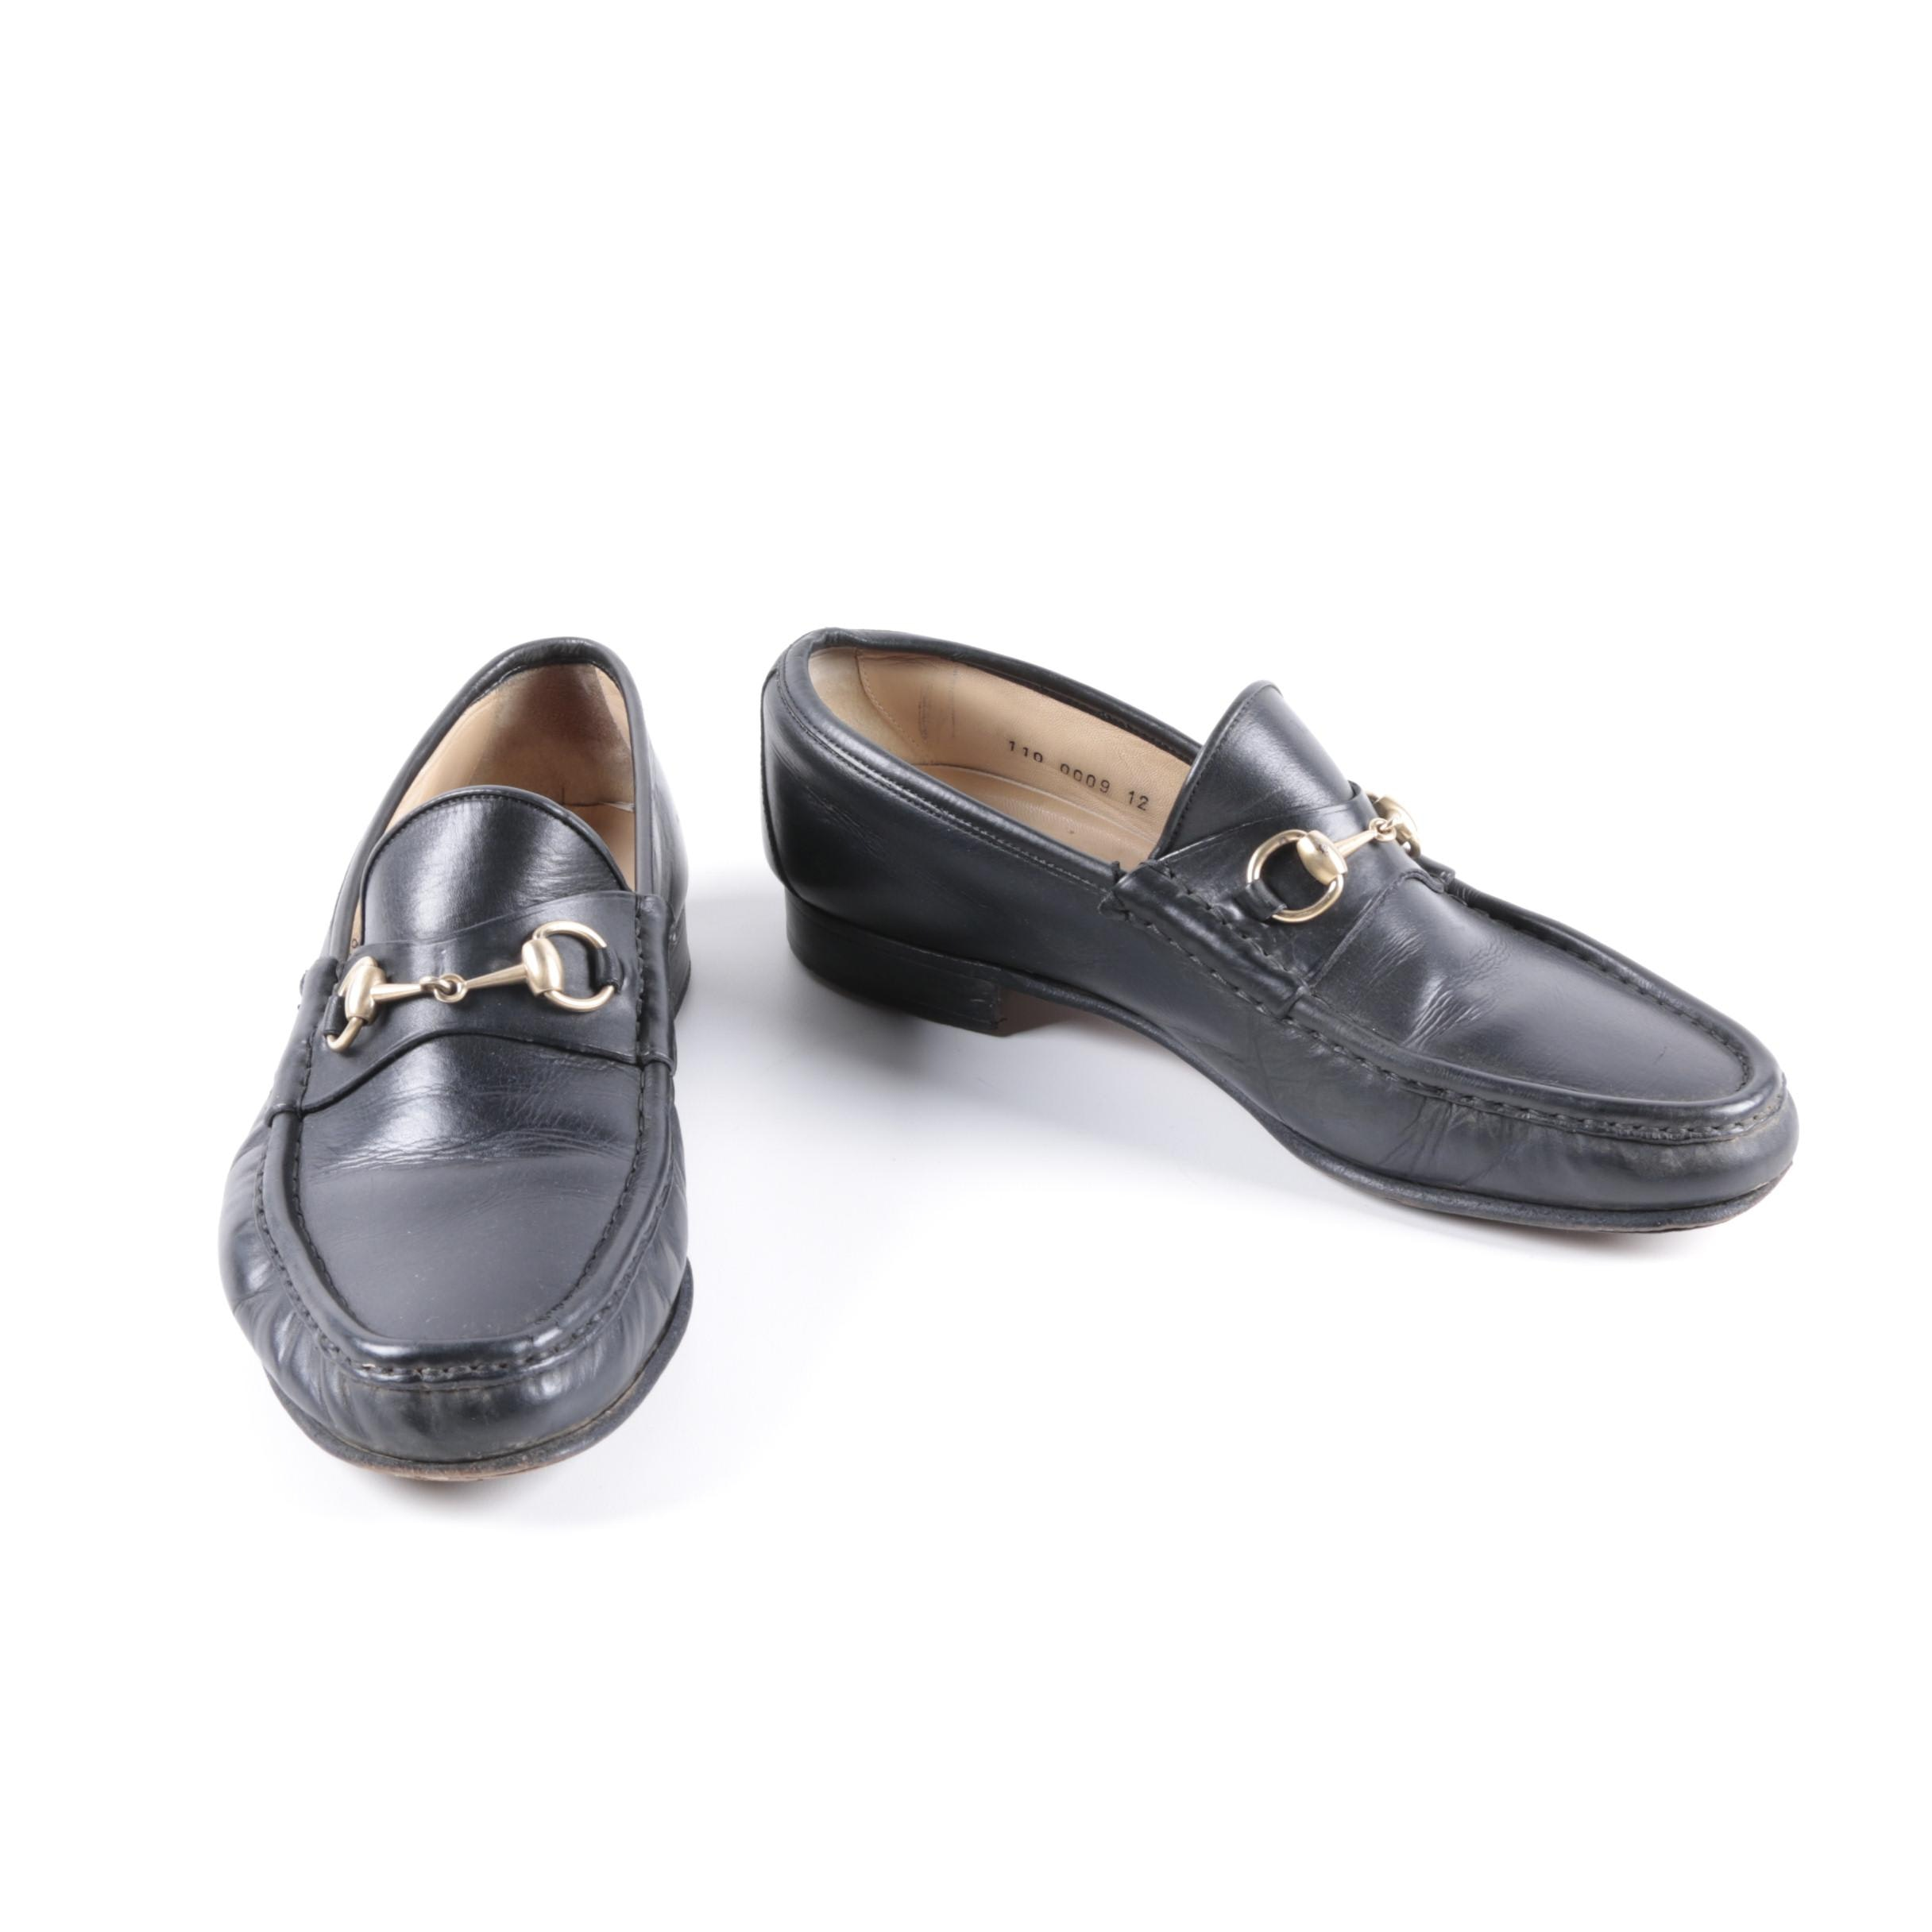 Leather Gucci Loafers